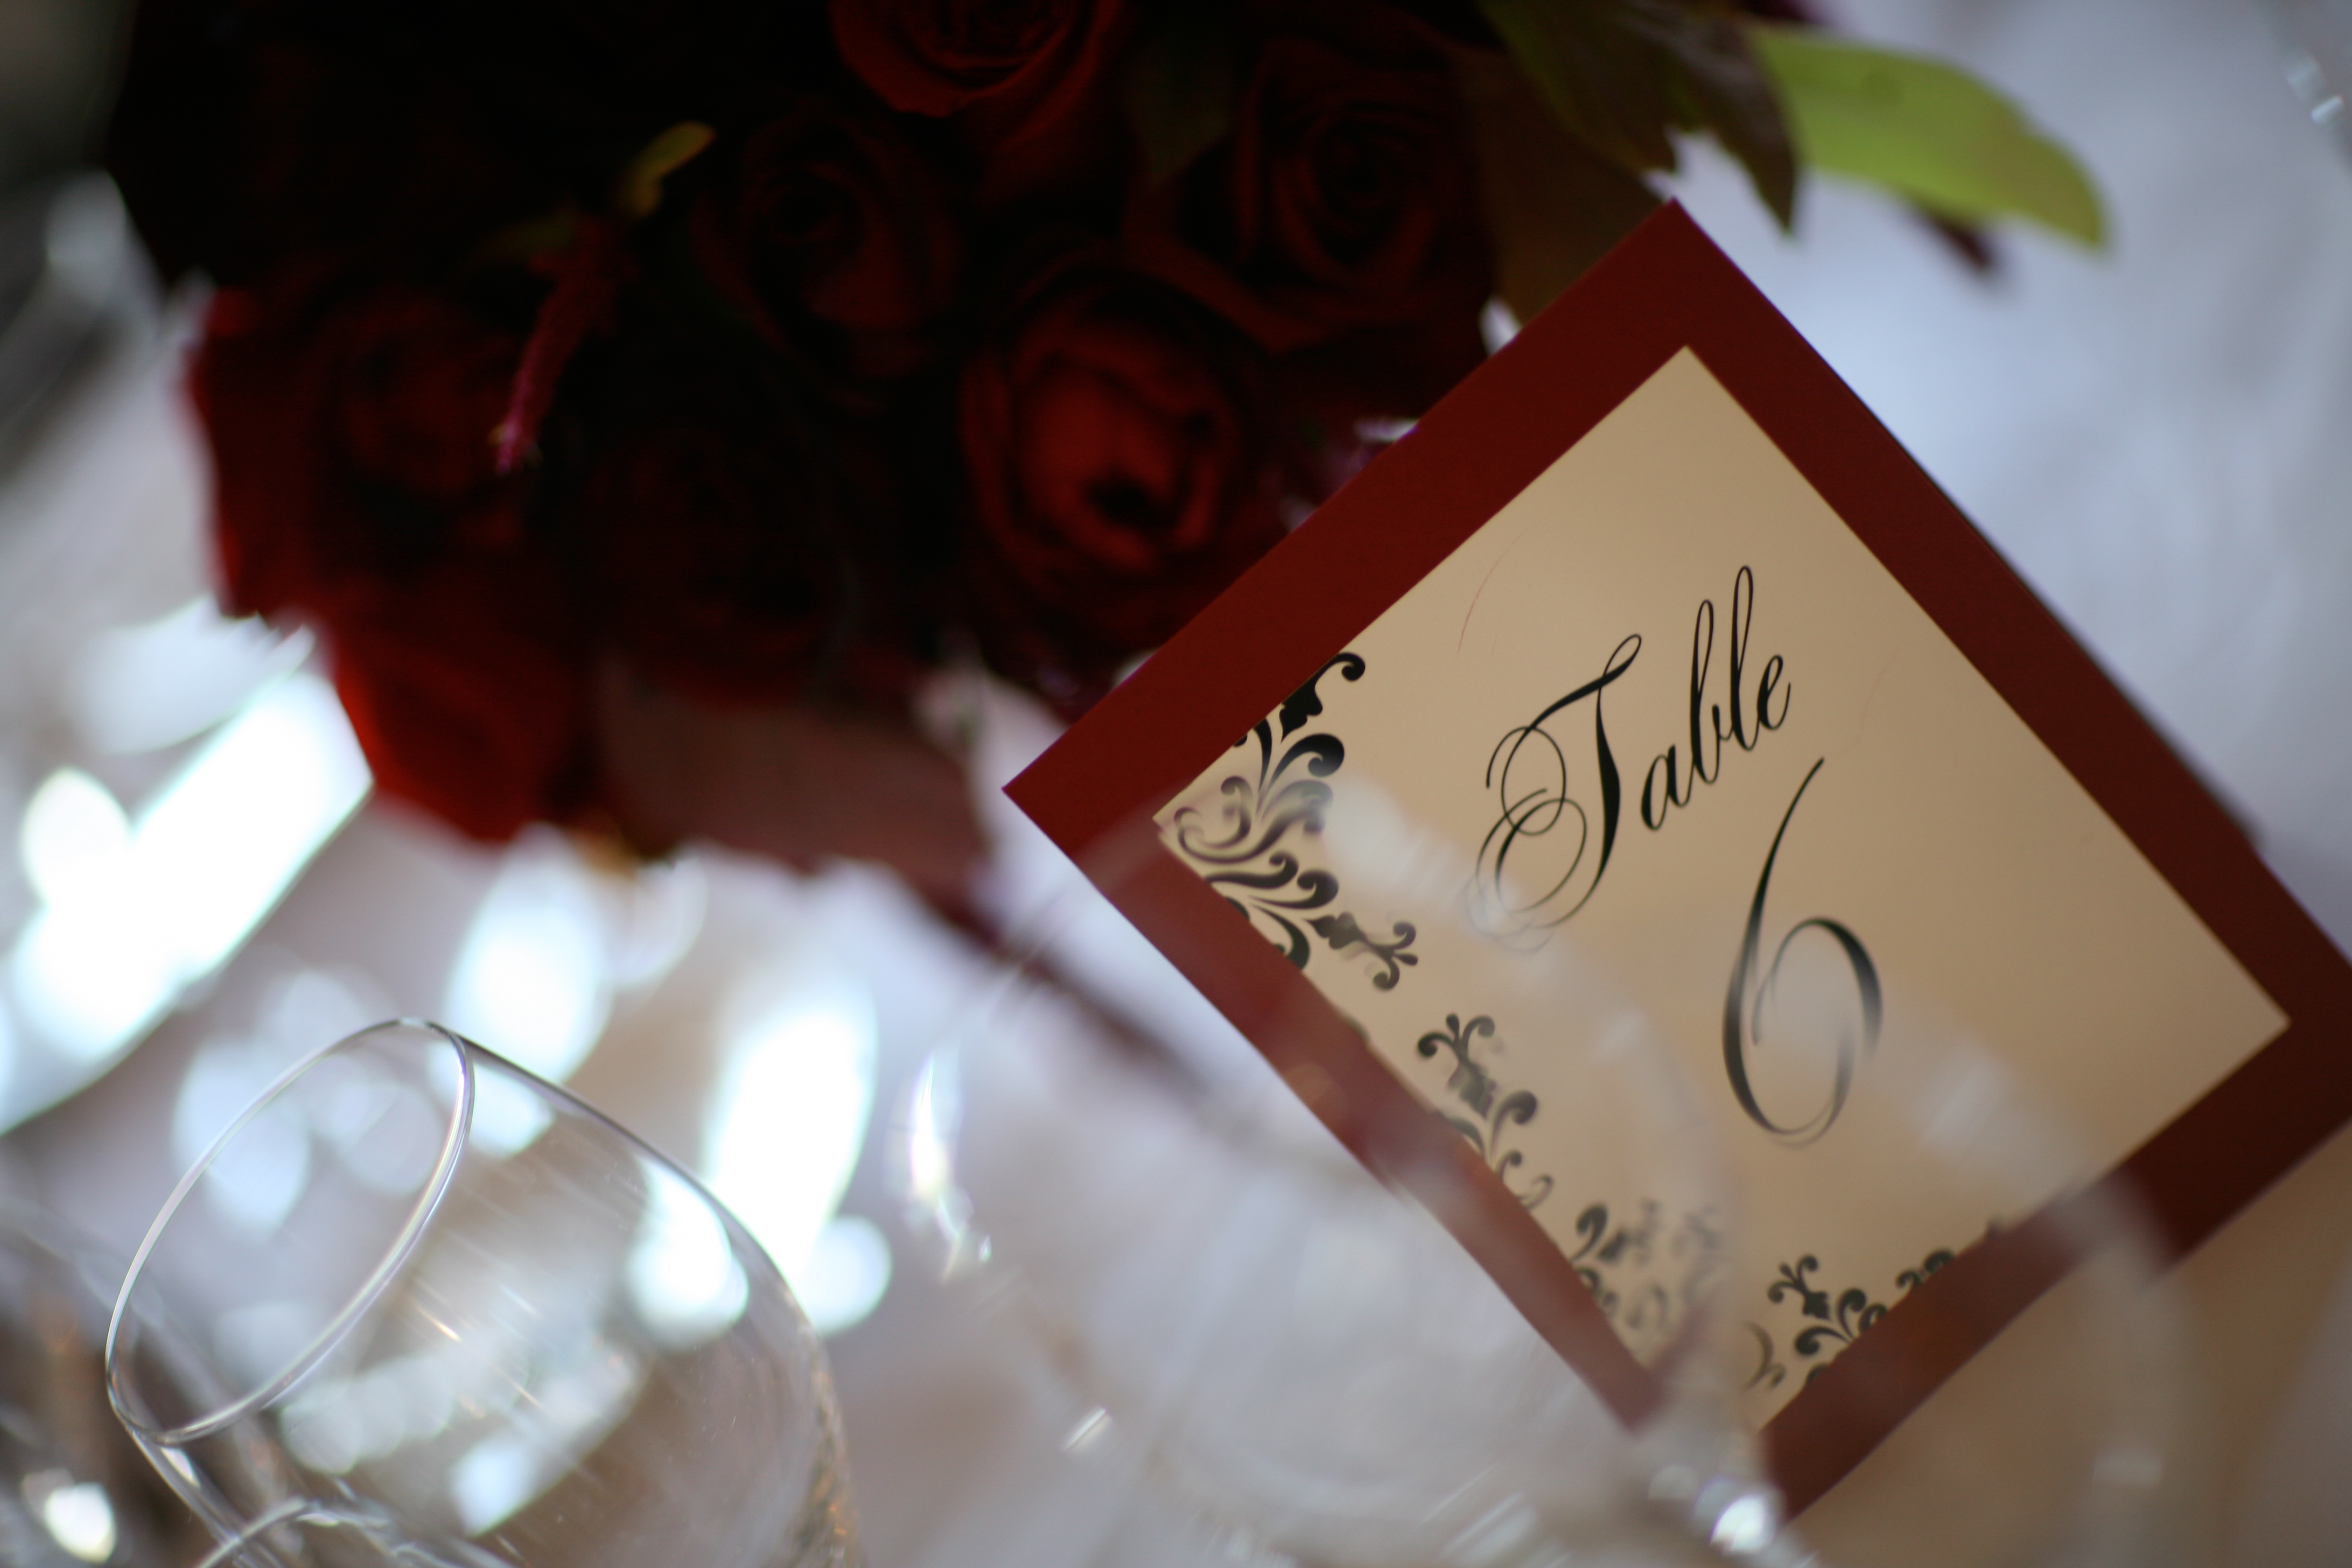 Stationery, red, Table Numbers, Table, Table number, San francisco, Fairmont, Downey street events, Annie mcelwain, Vinage